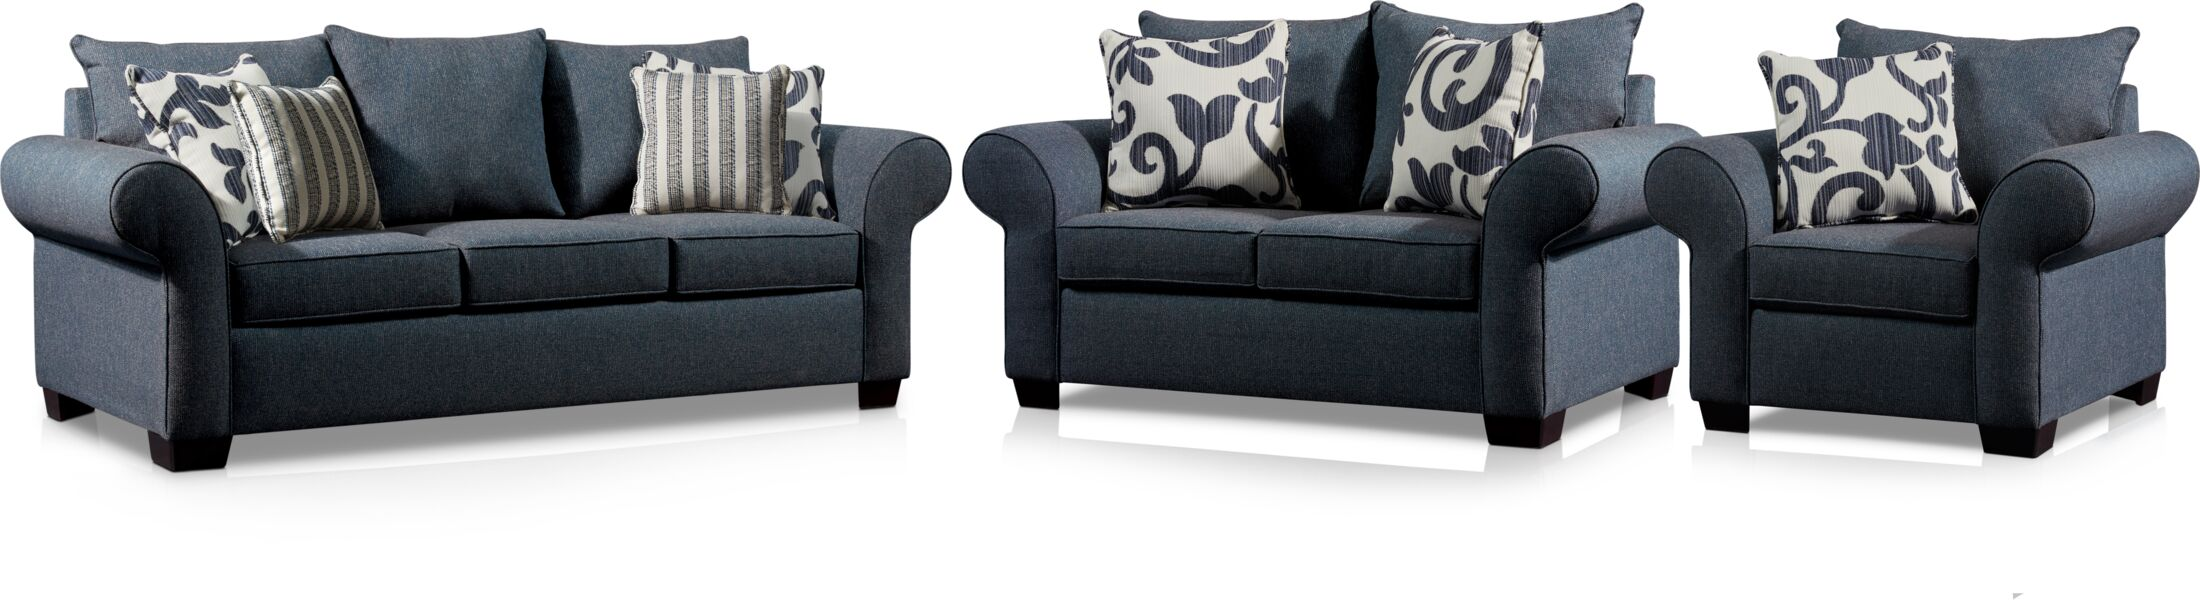 Living Room Furniture - Calloway Sofa, Loveseat and Chair - Blue